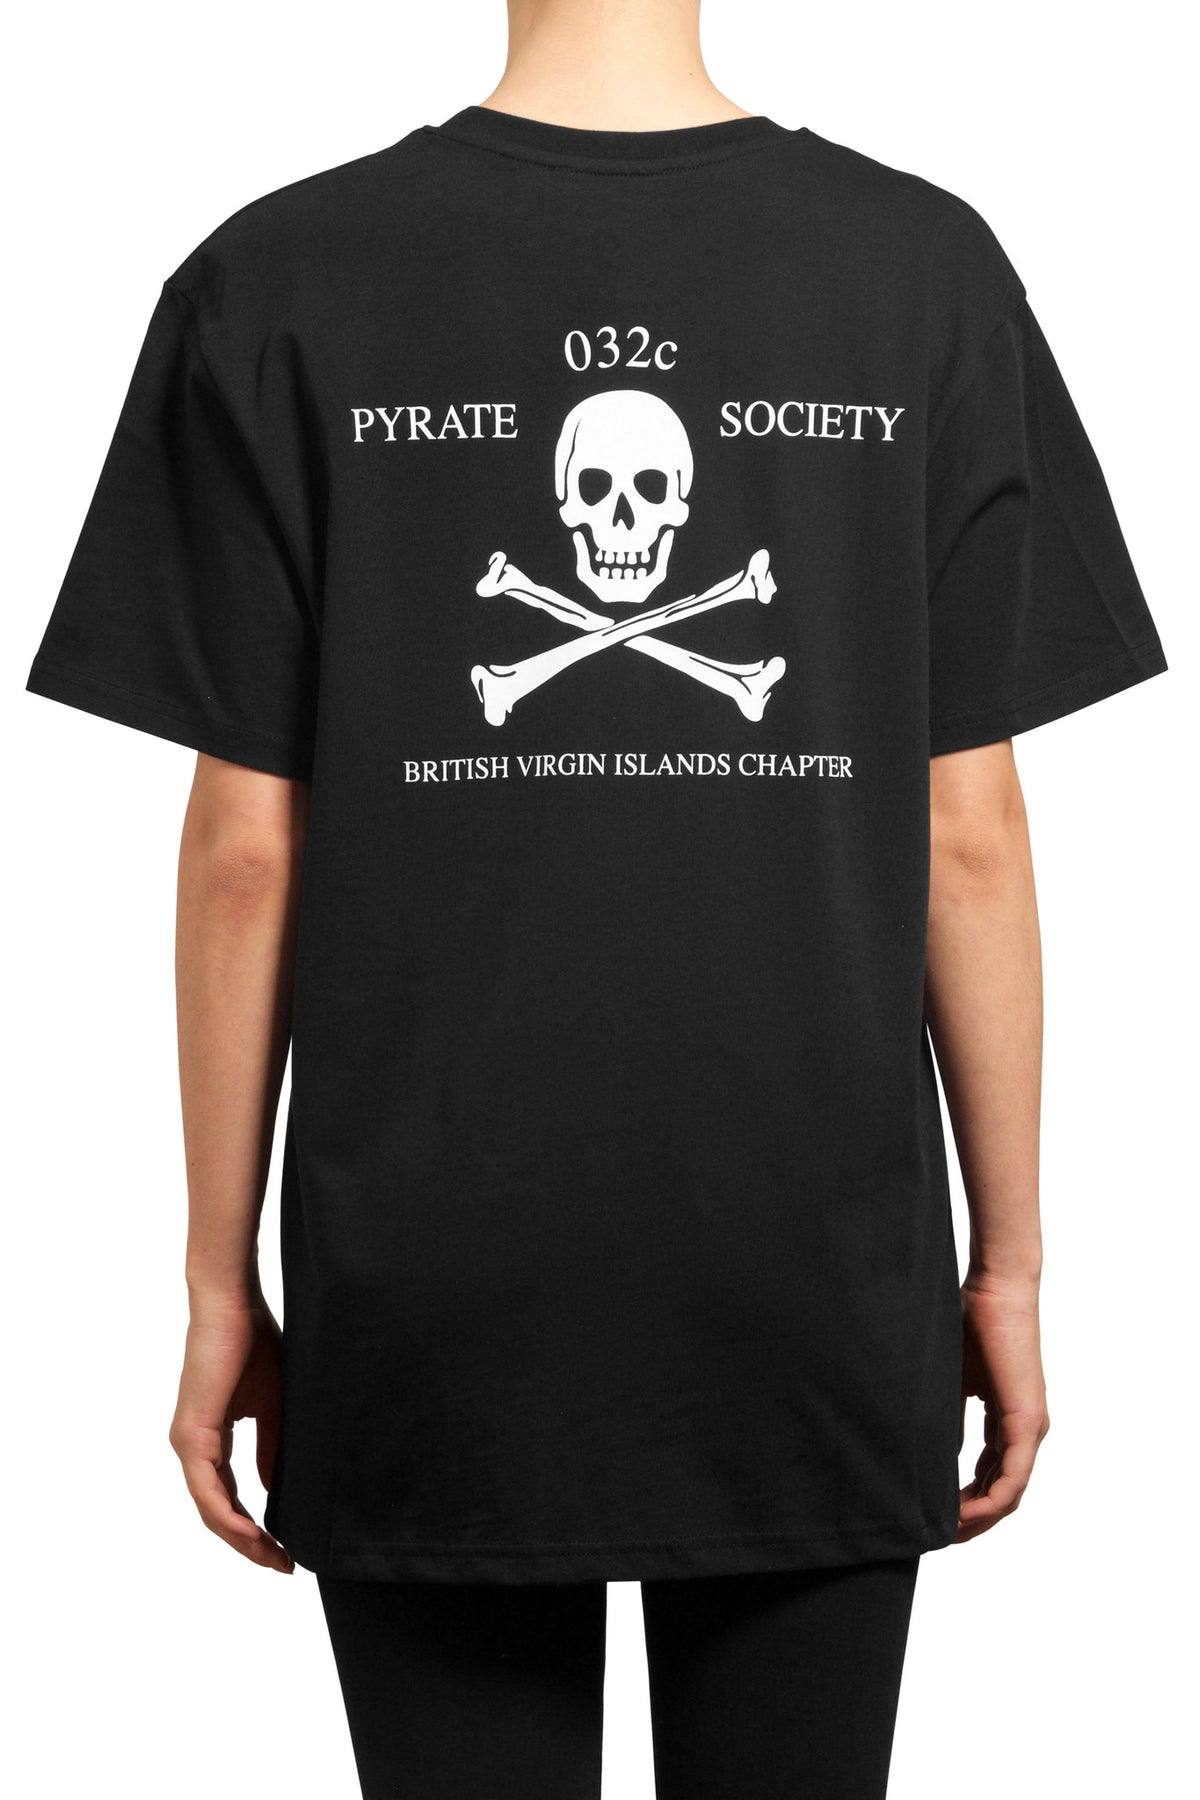 032c Pyrate Society T-Shirt Black - 032c